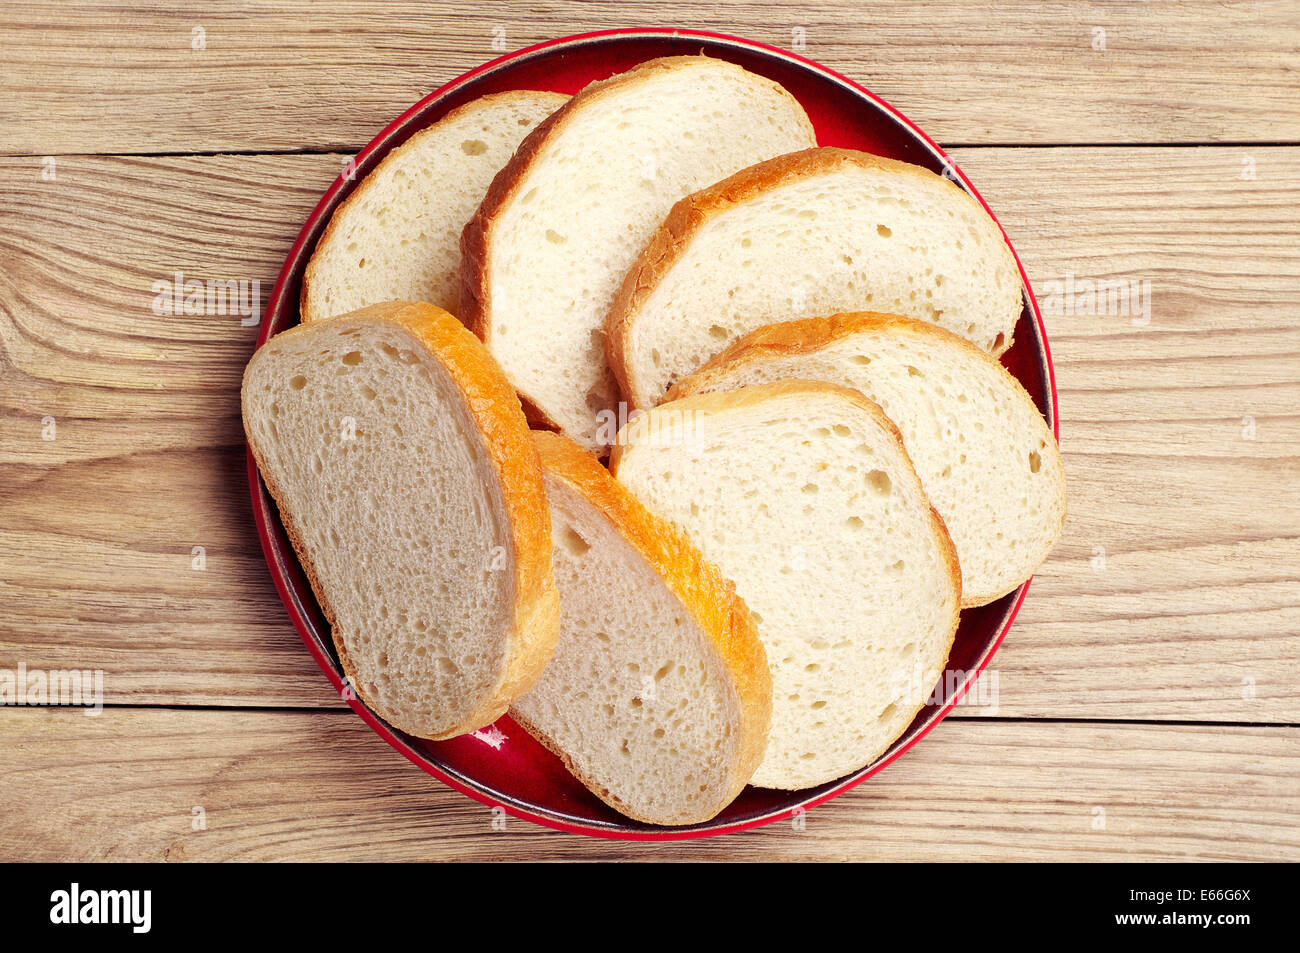 Plate With Slices White Bread On Vintage Wooden Table. Top View